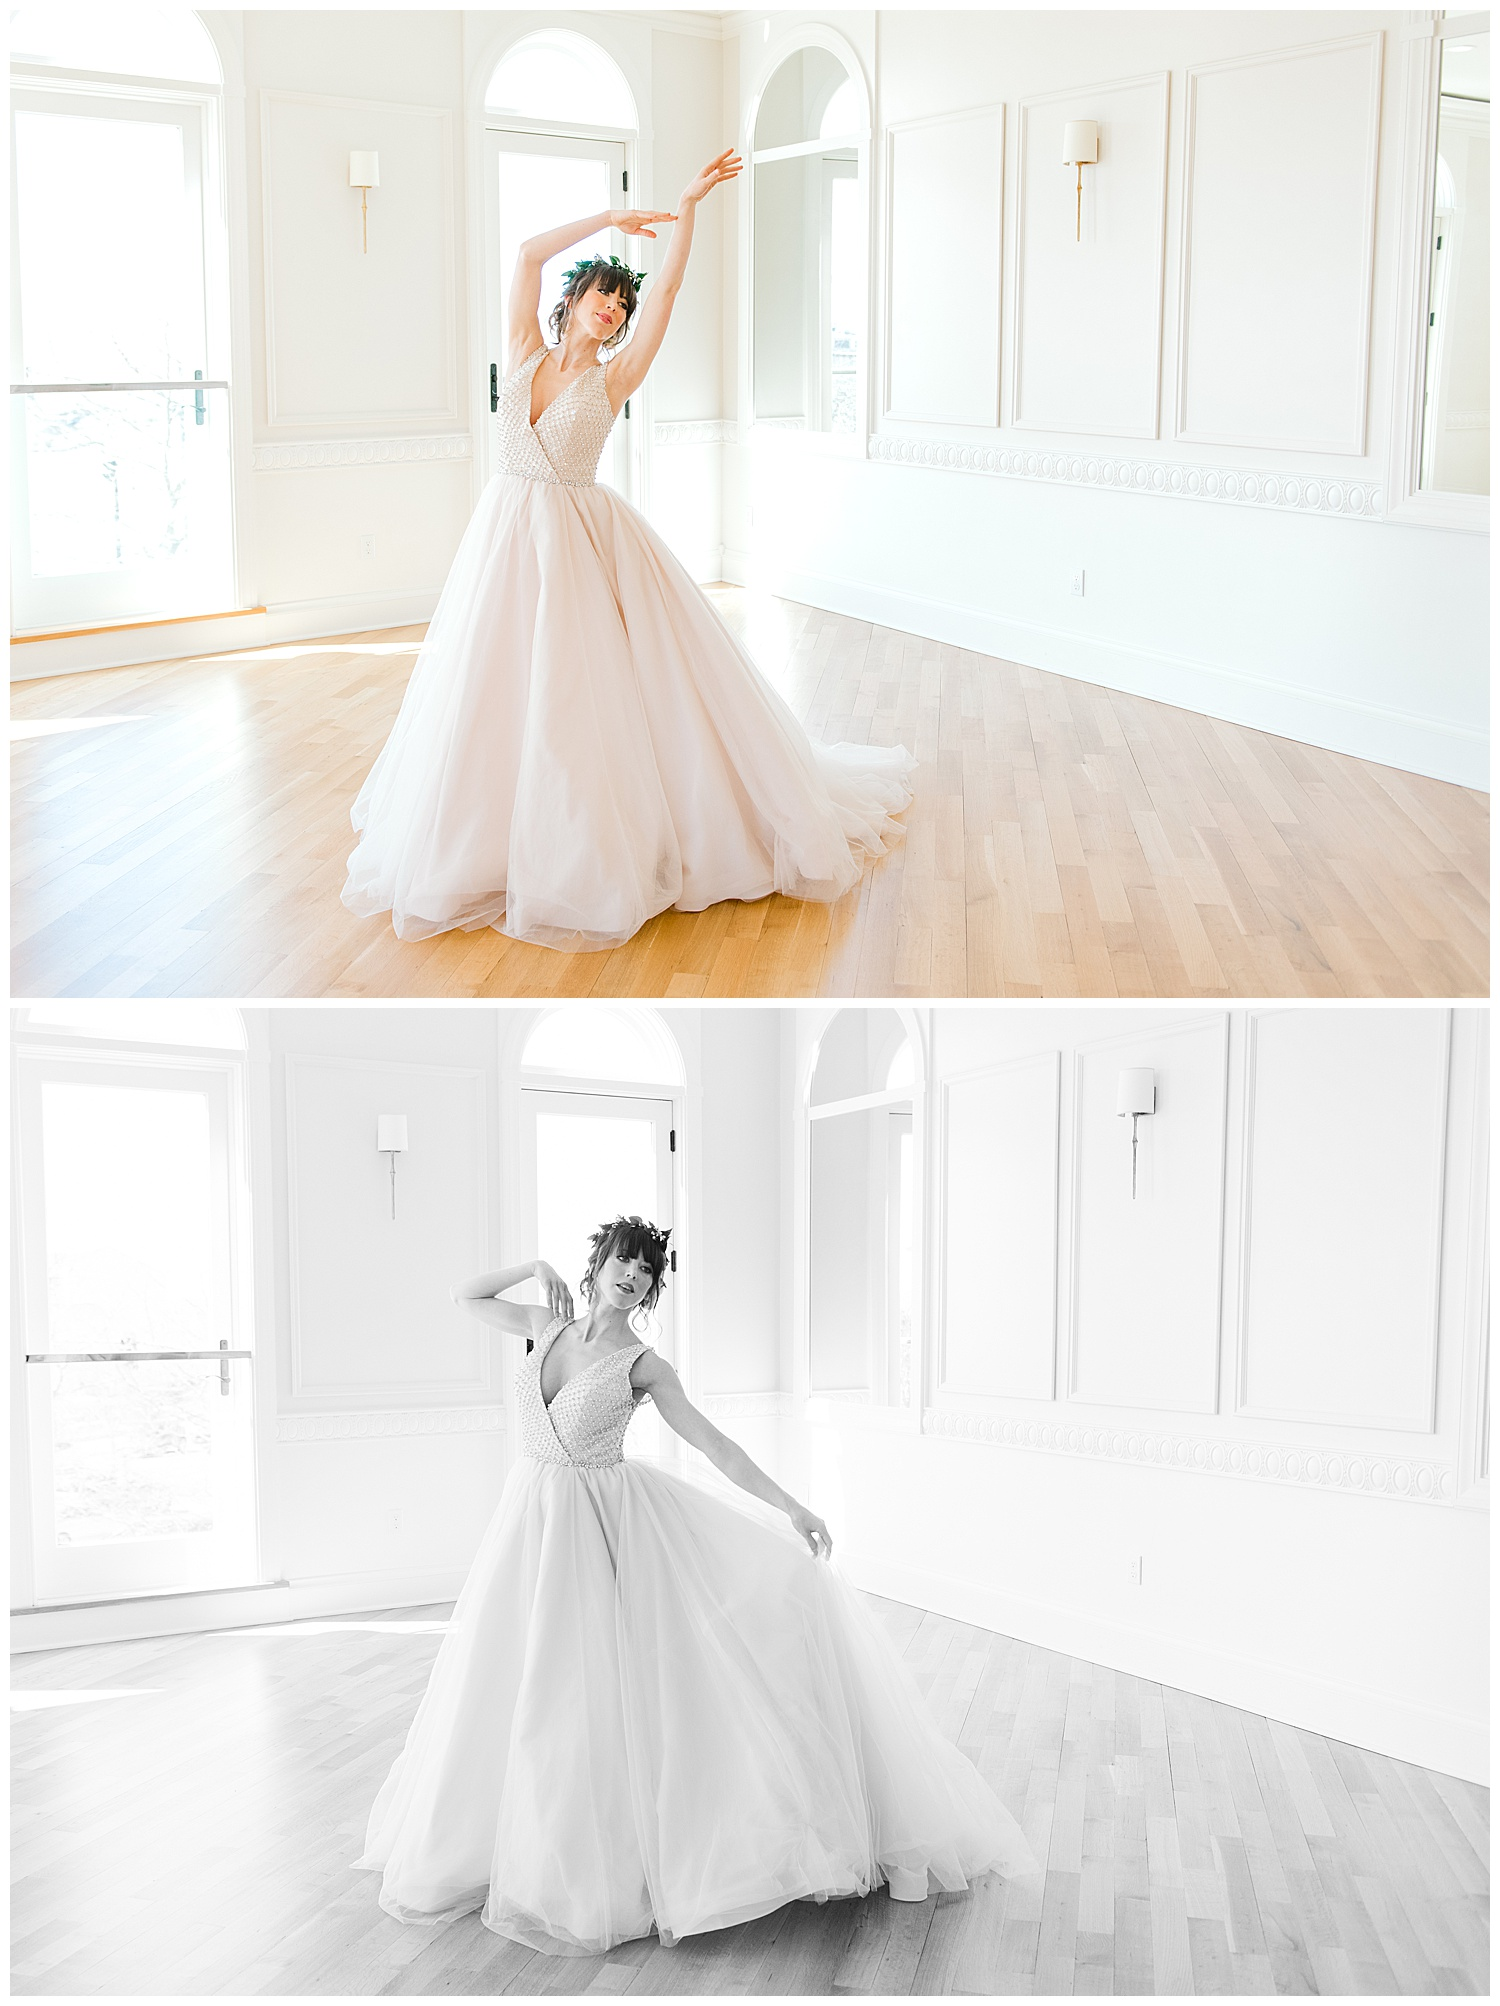 blush-ballerina-wedding-photography-newport-rhode-island-46.jpg